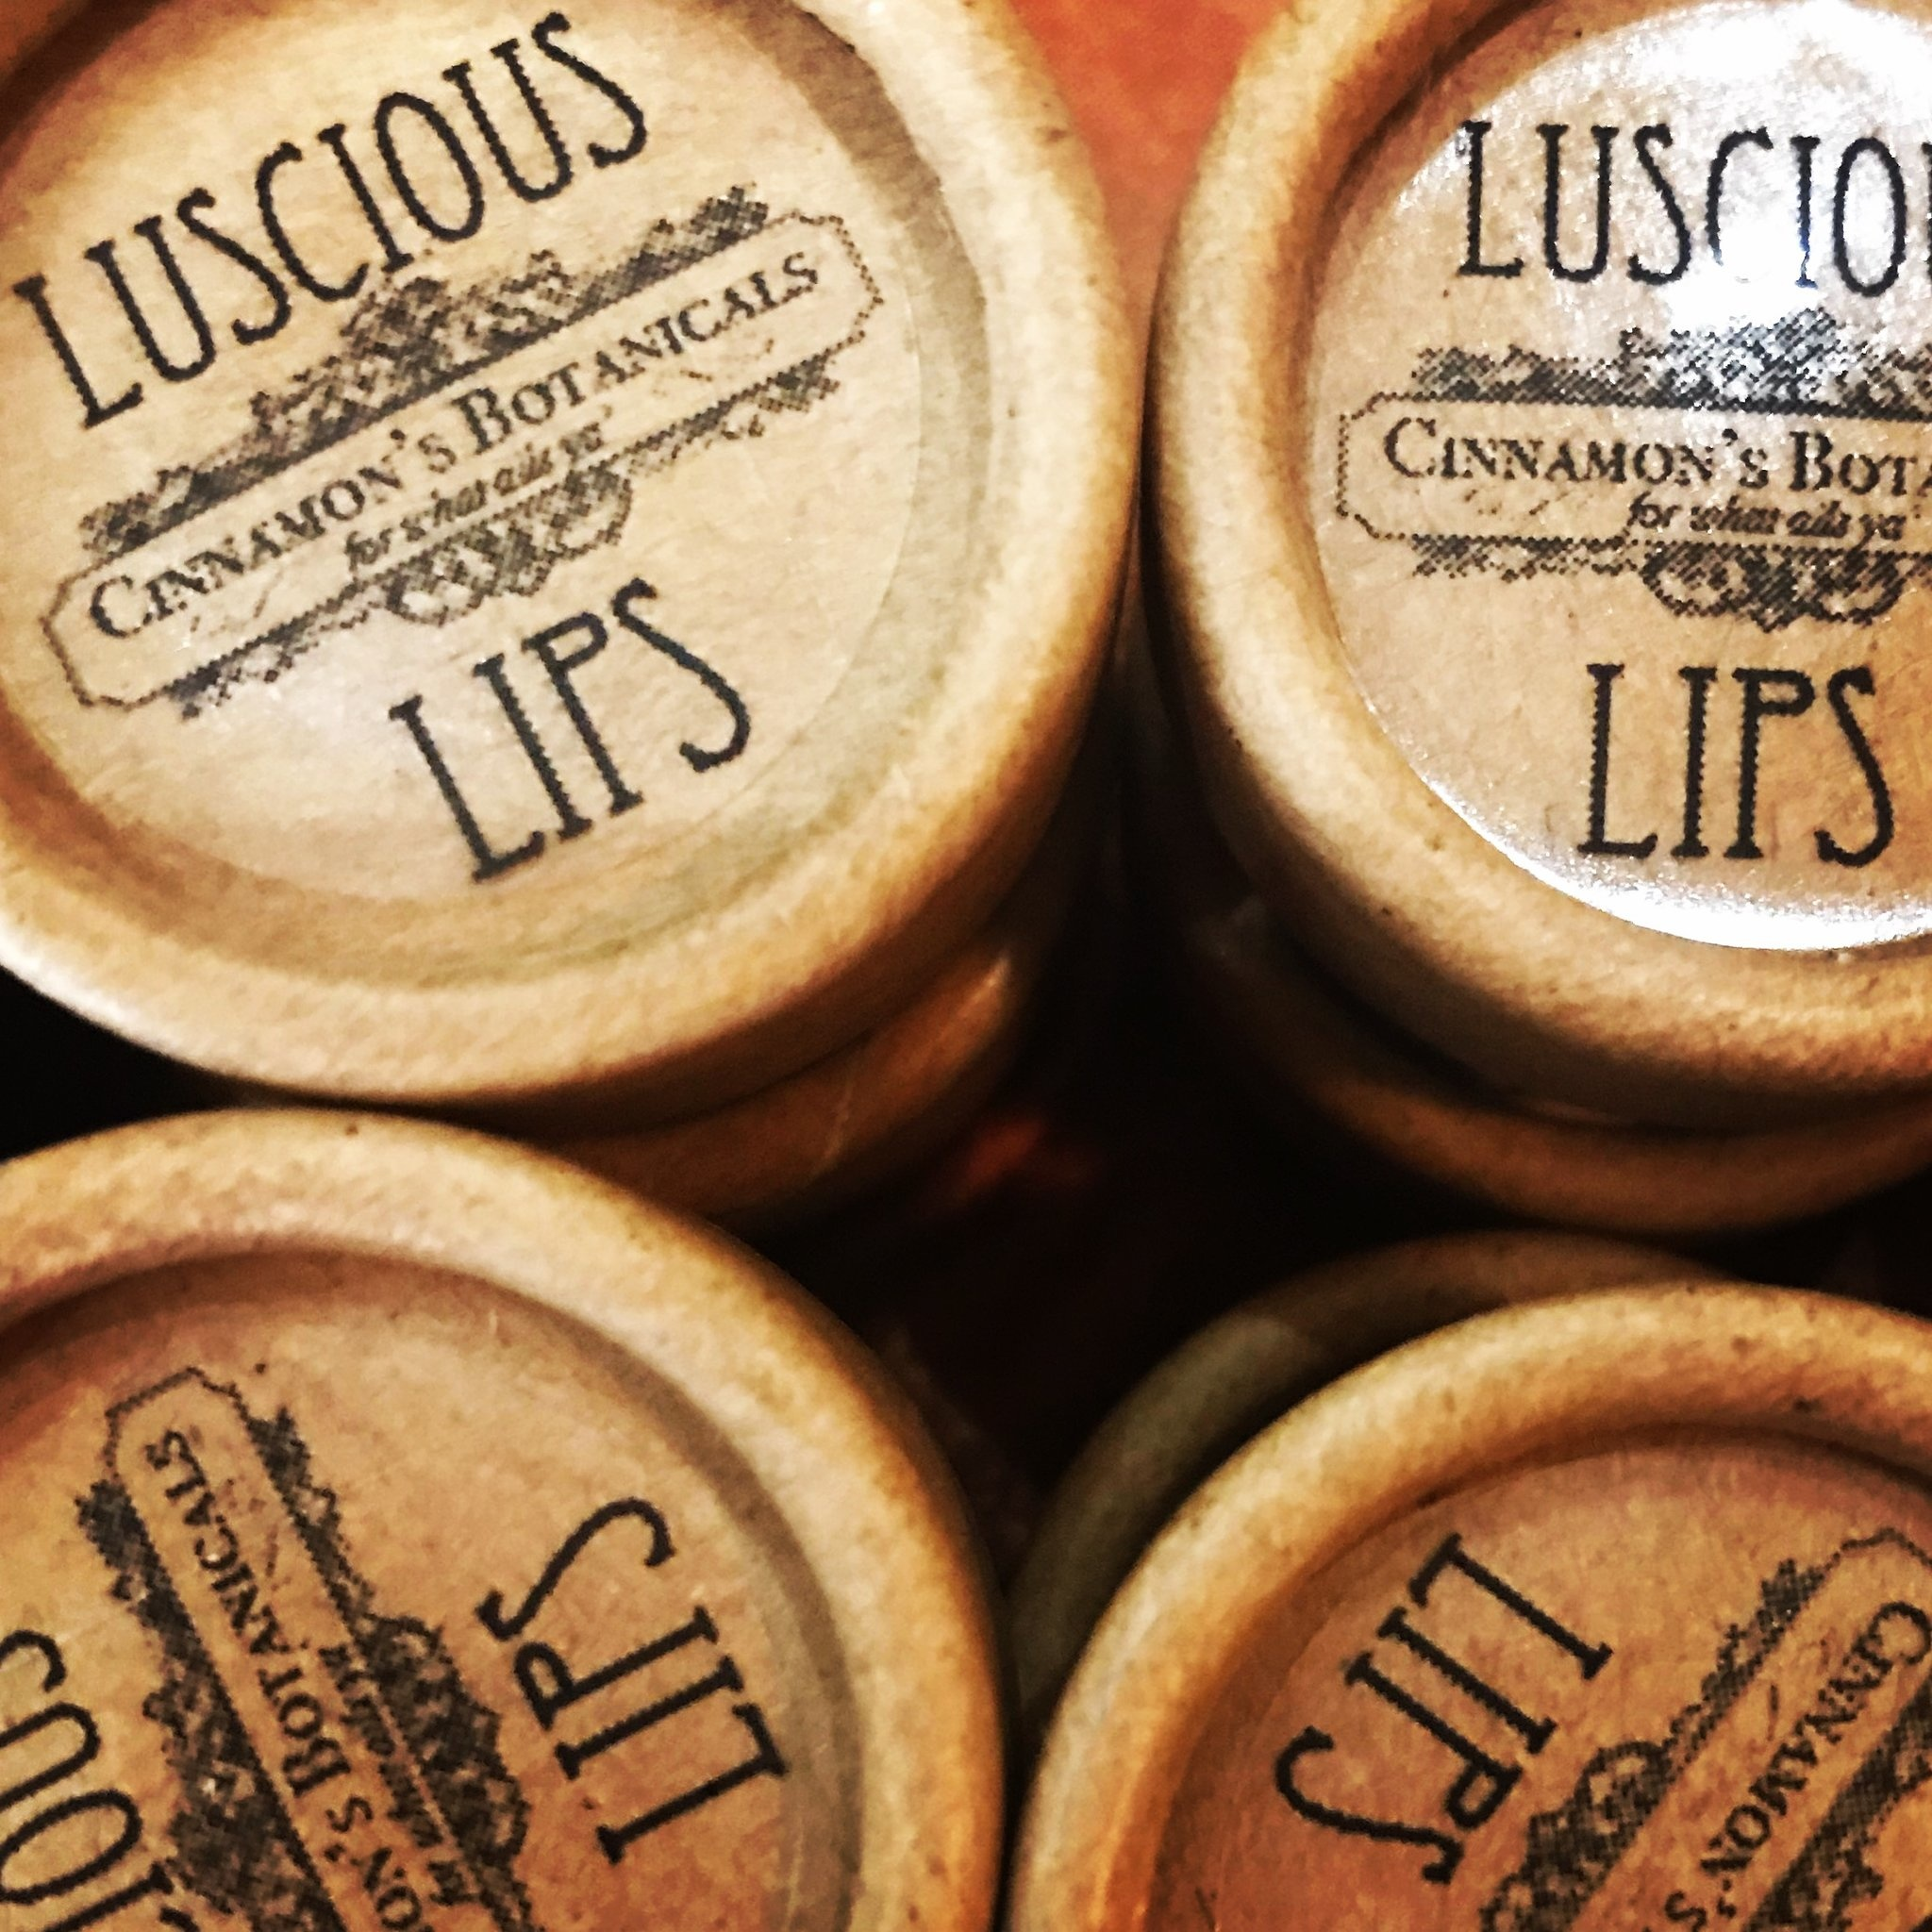 Cinnamon's Botanicals Lip Balm 1/4 oz.